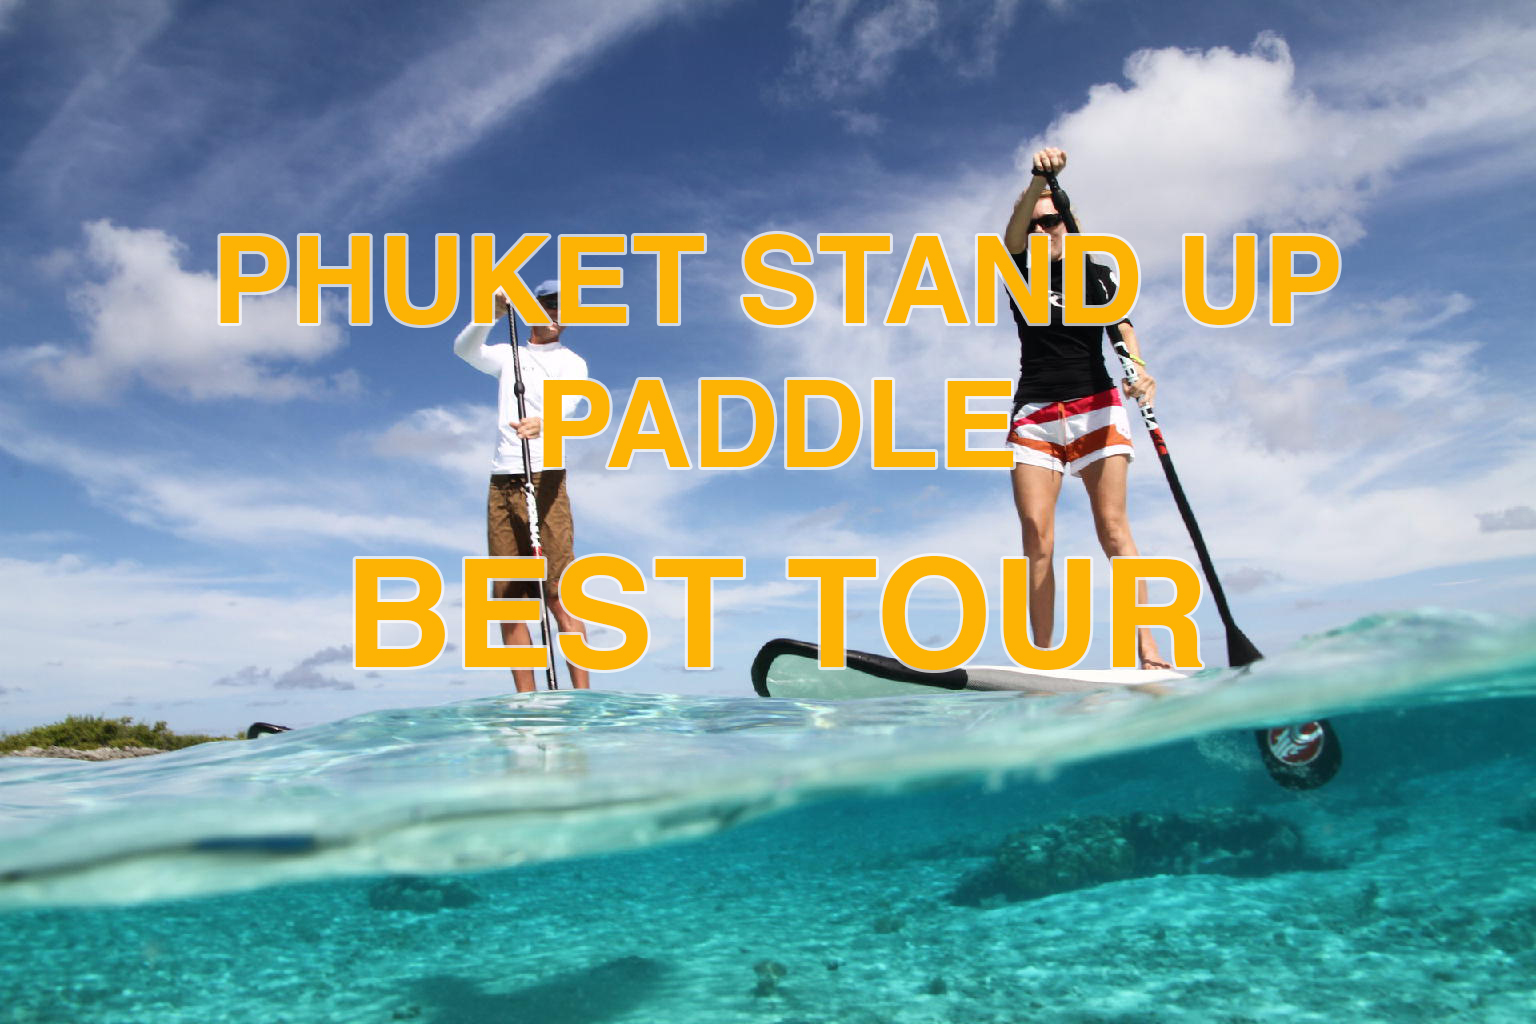 Phuket Paddle Boarding best tour board